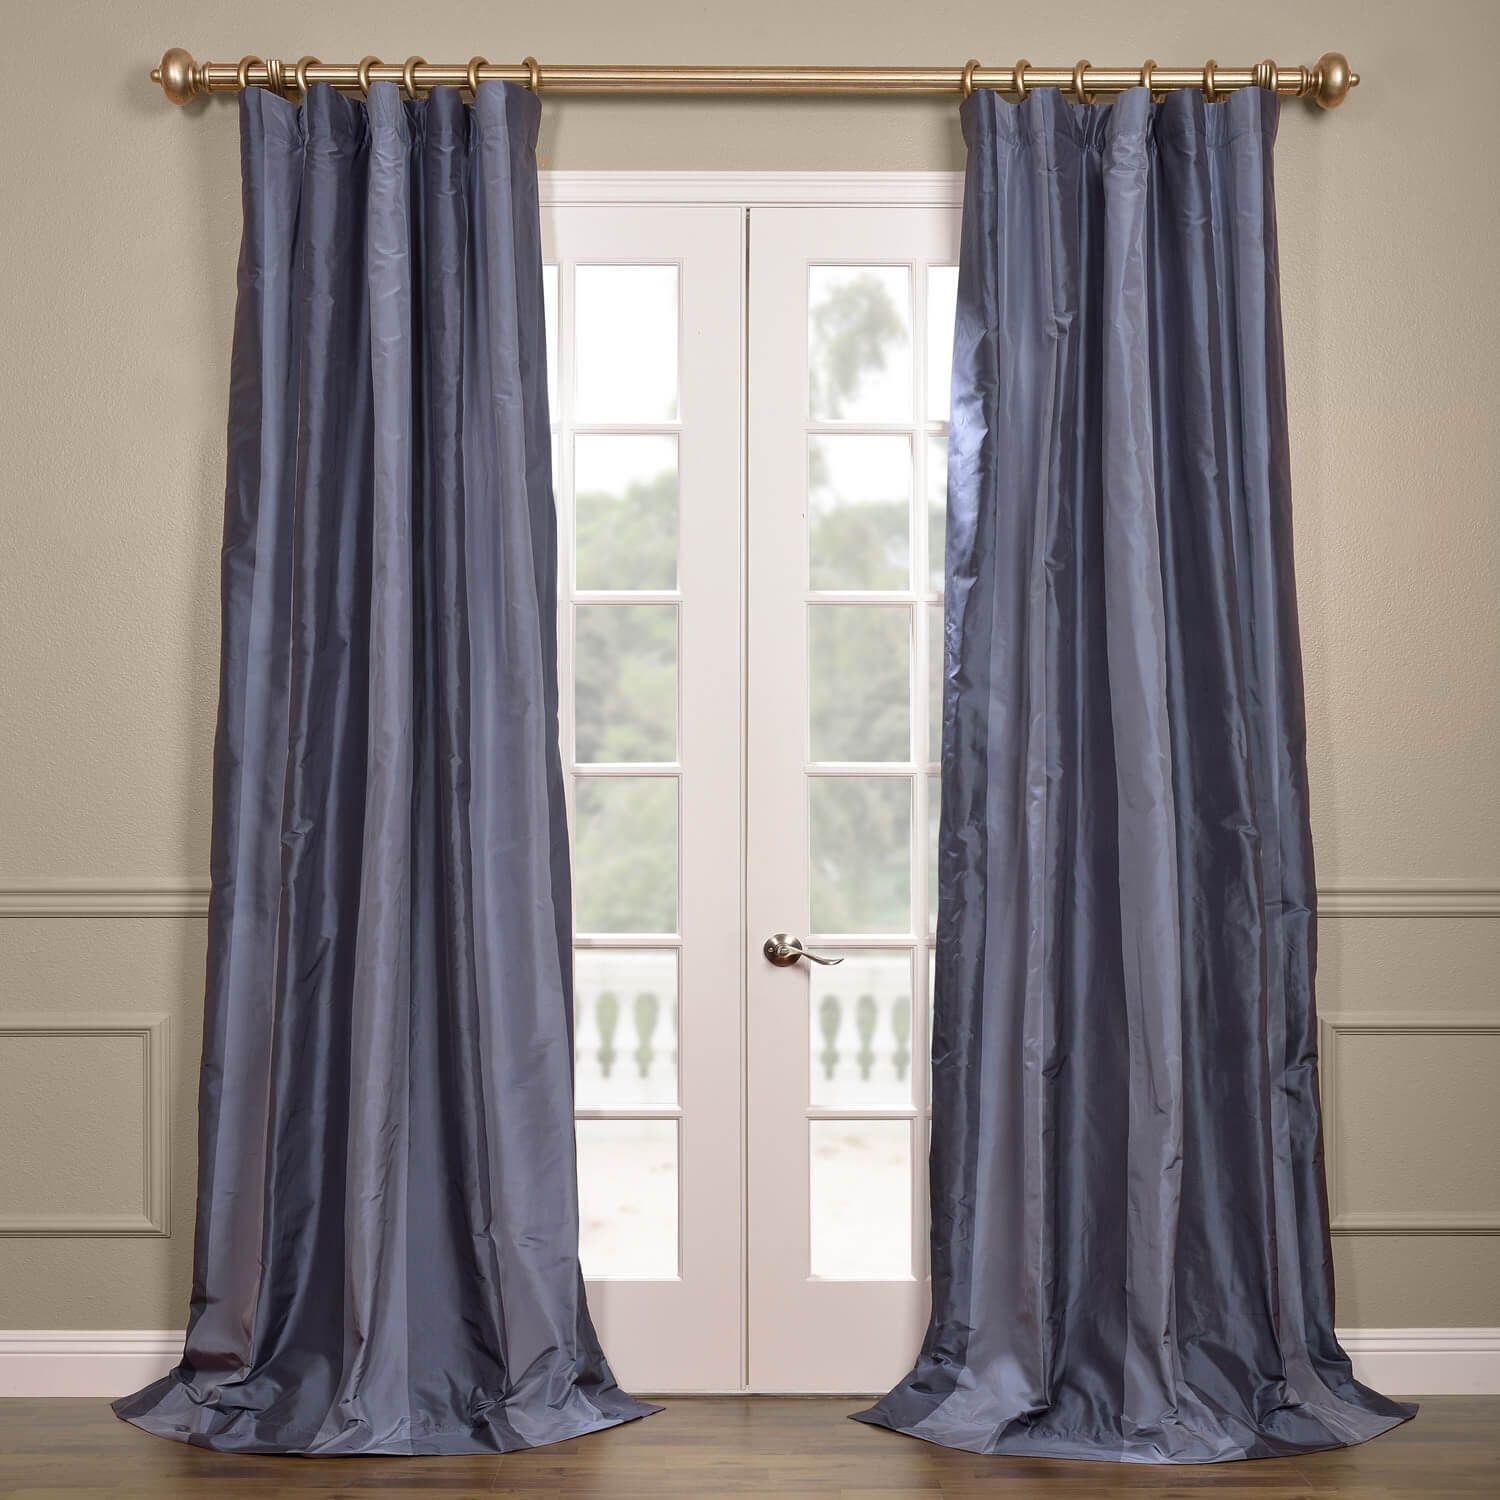 sheer discount crushed curtains l home drapes window allure the curtain silver velvet treatments pair depot greenite and eyelet elegance